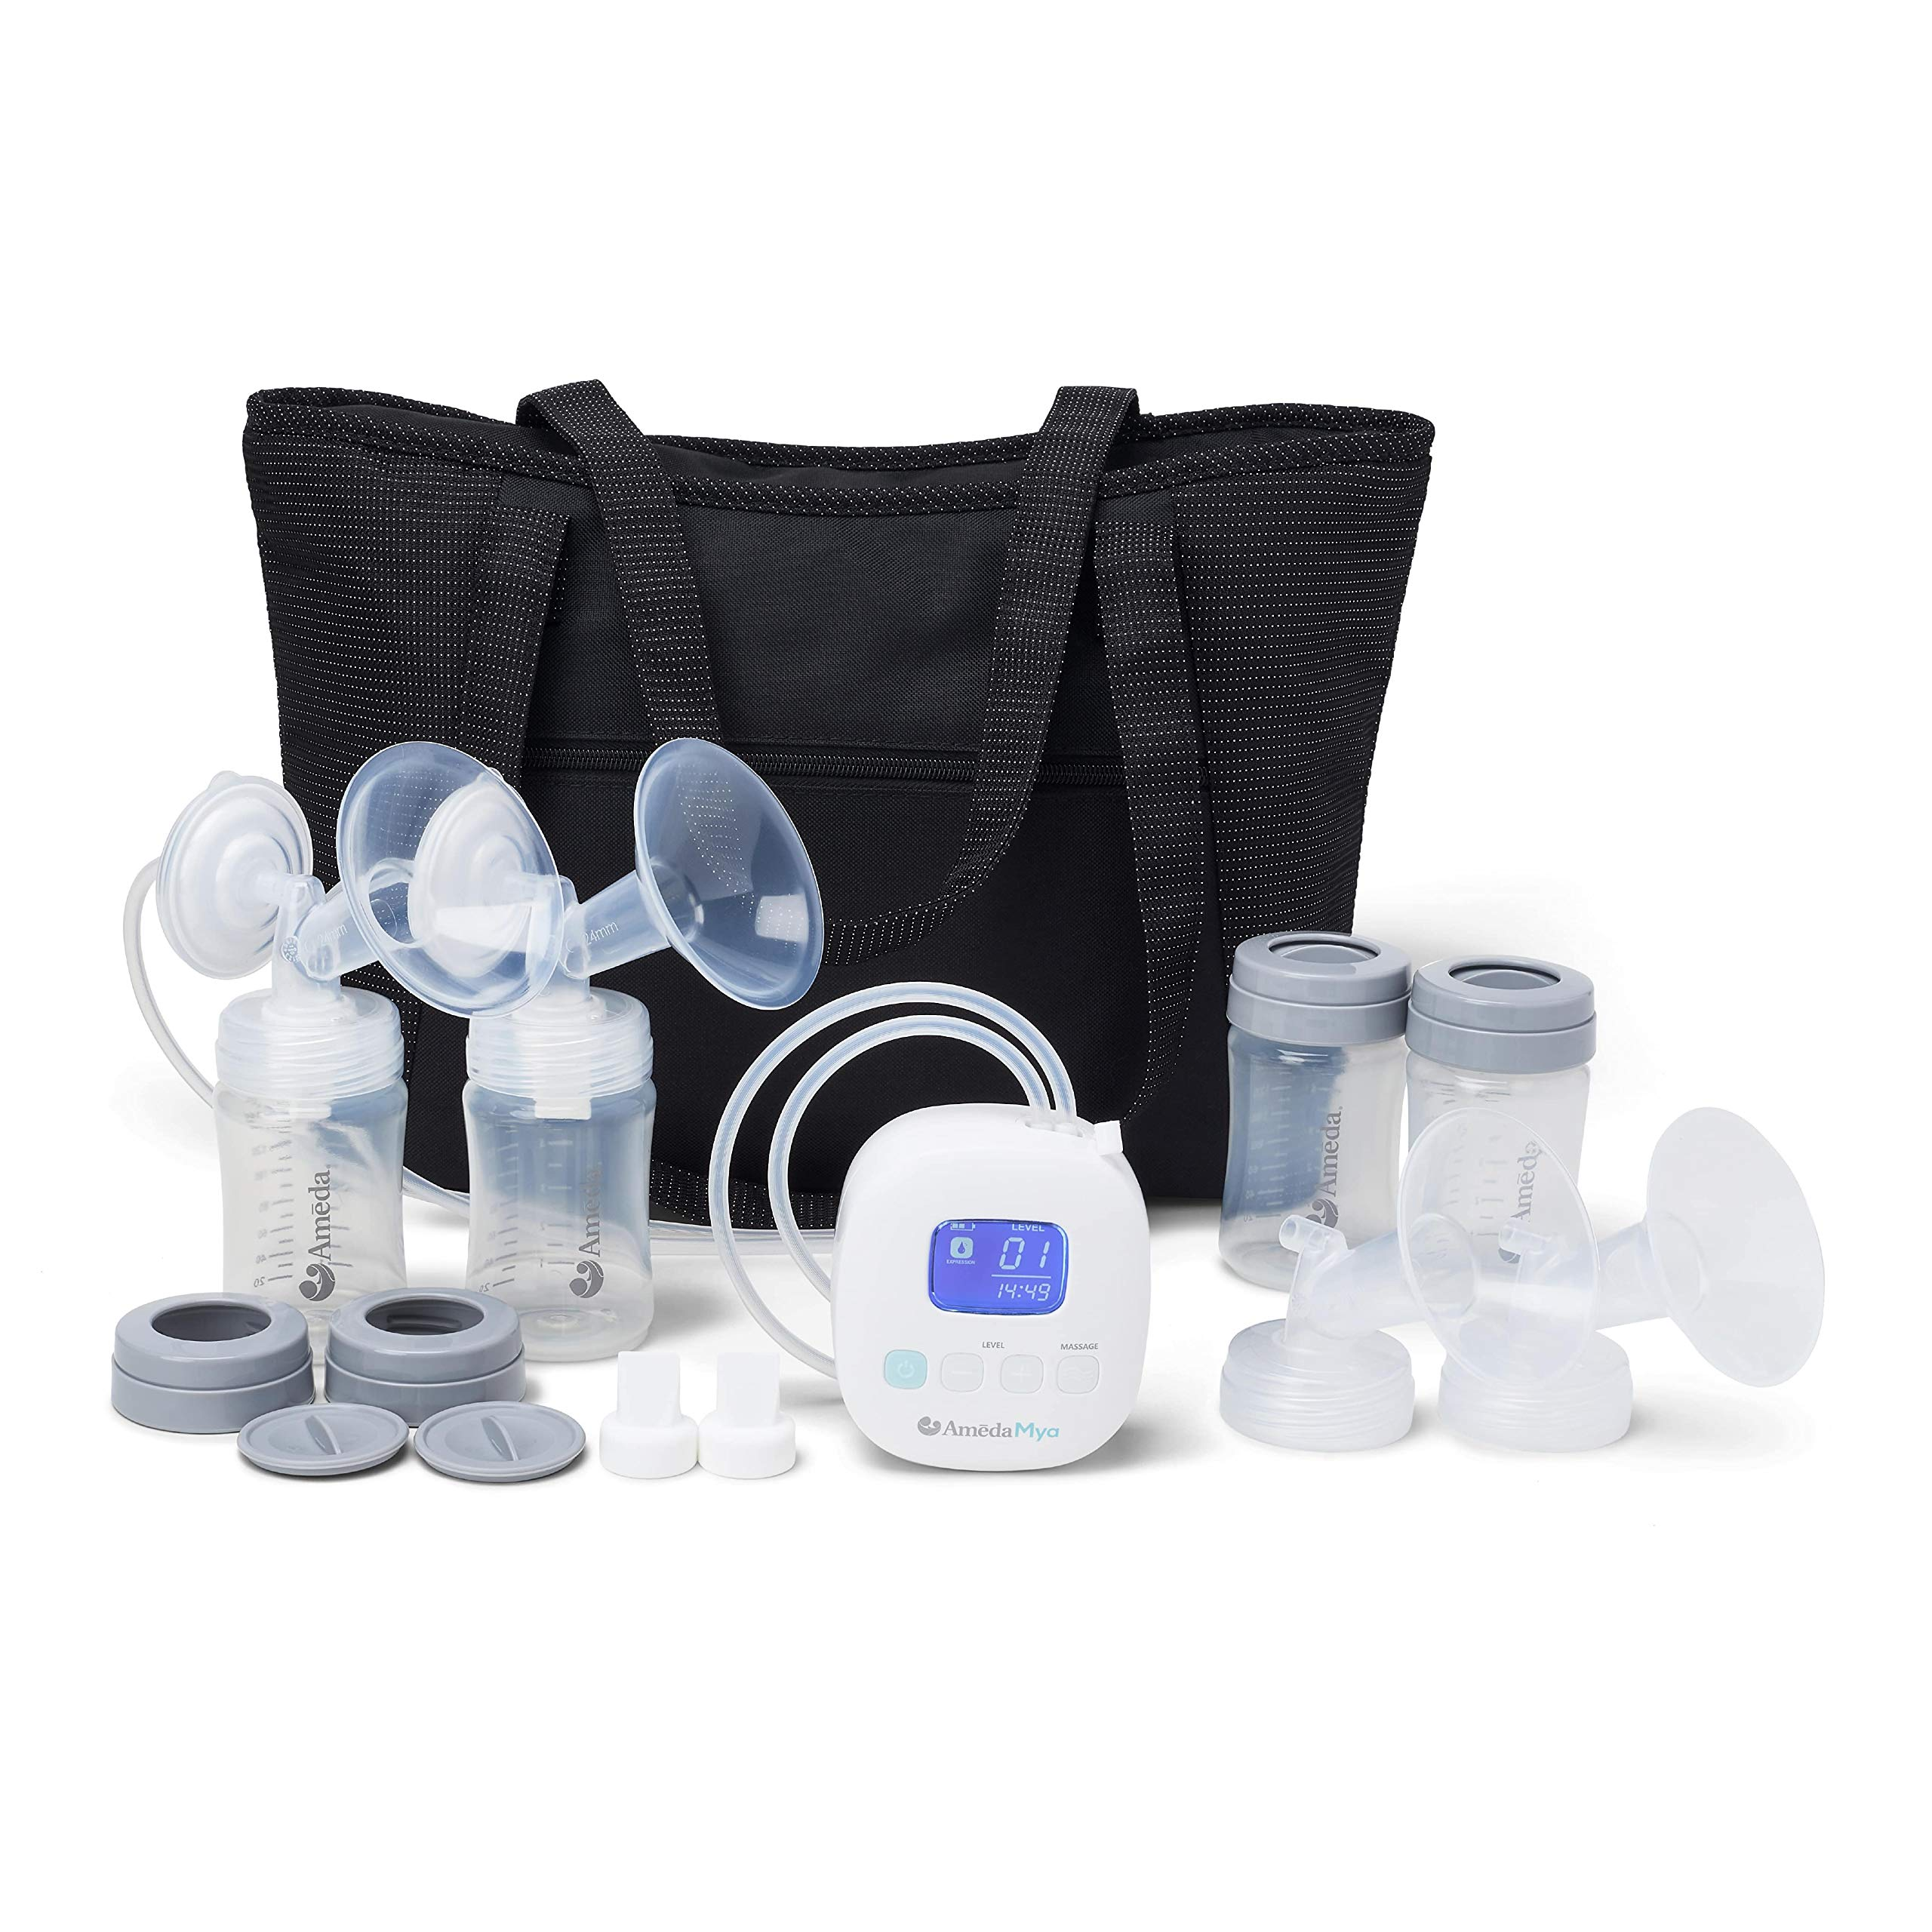 Ameda MYA Portable Hospital Breast Pump with Large Tote, Includes 24mm Flanges, Freezer-Safe Storage Bottles, and a Built-in Rechargeable Battery, White by Ameda